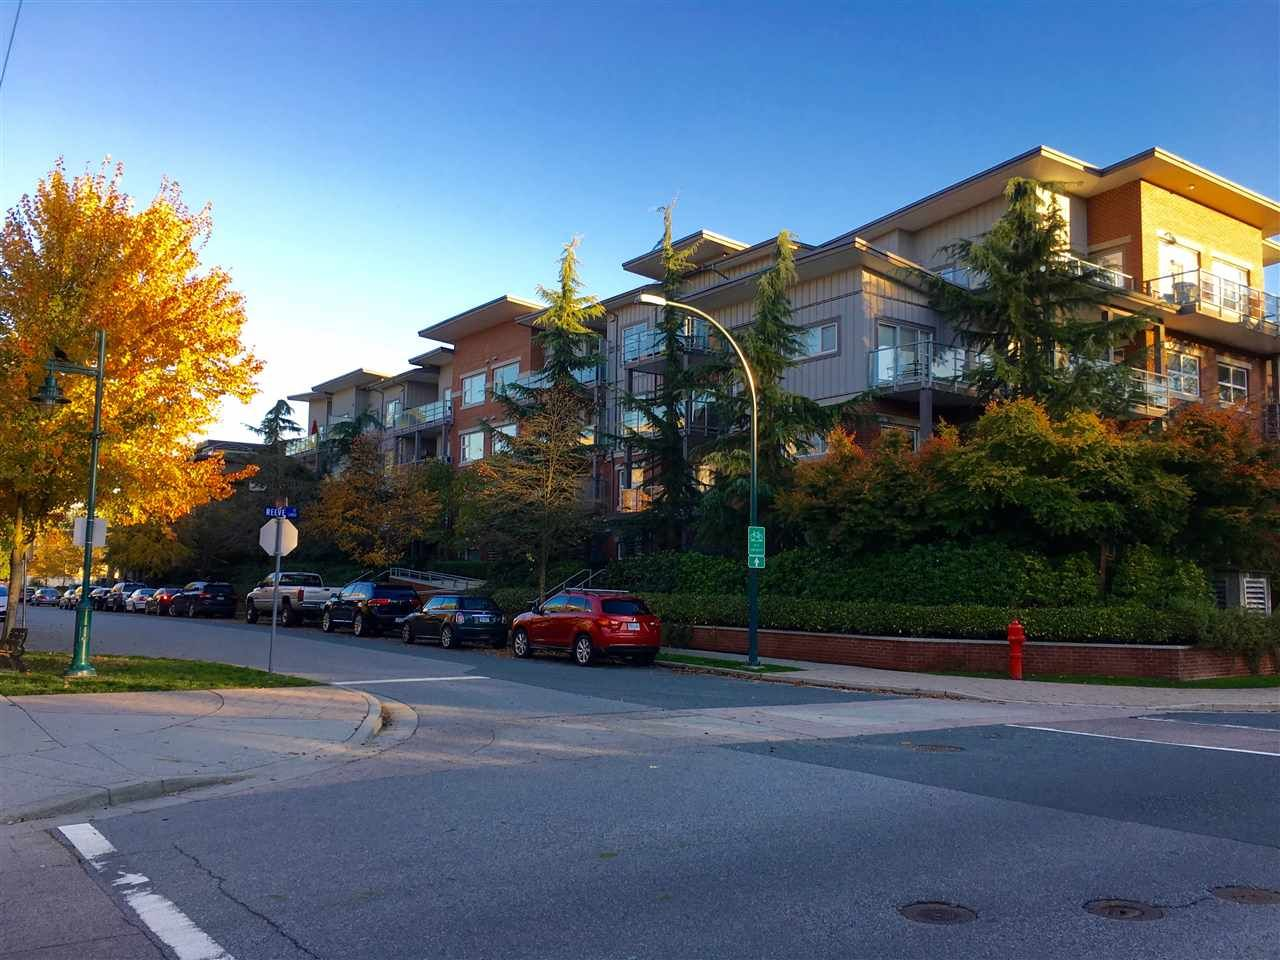 Photo 19: Photos: 106 2488 KELLY Avenue in Port Coquitlam: Central Pt Coquitlam Condo for sale : MLS®# R2216914